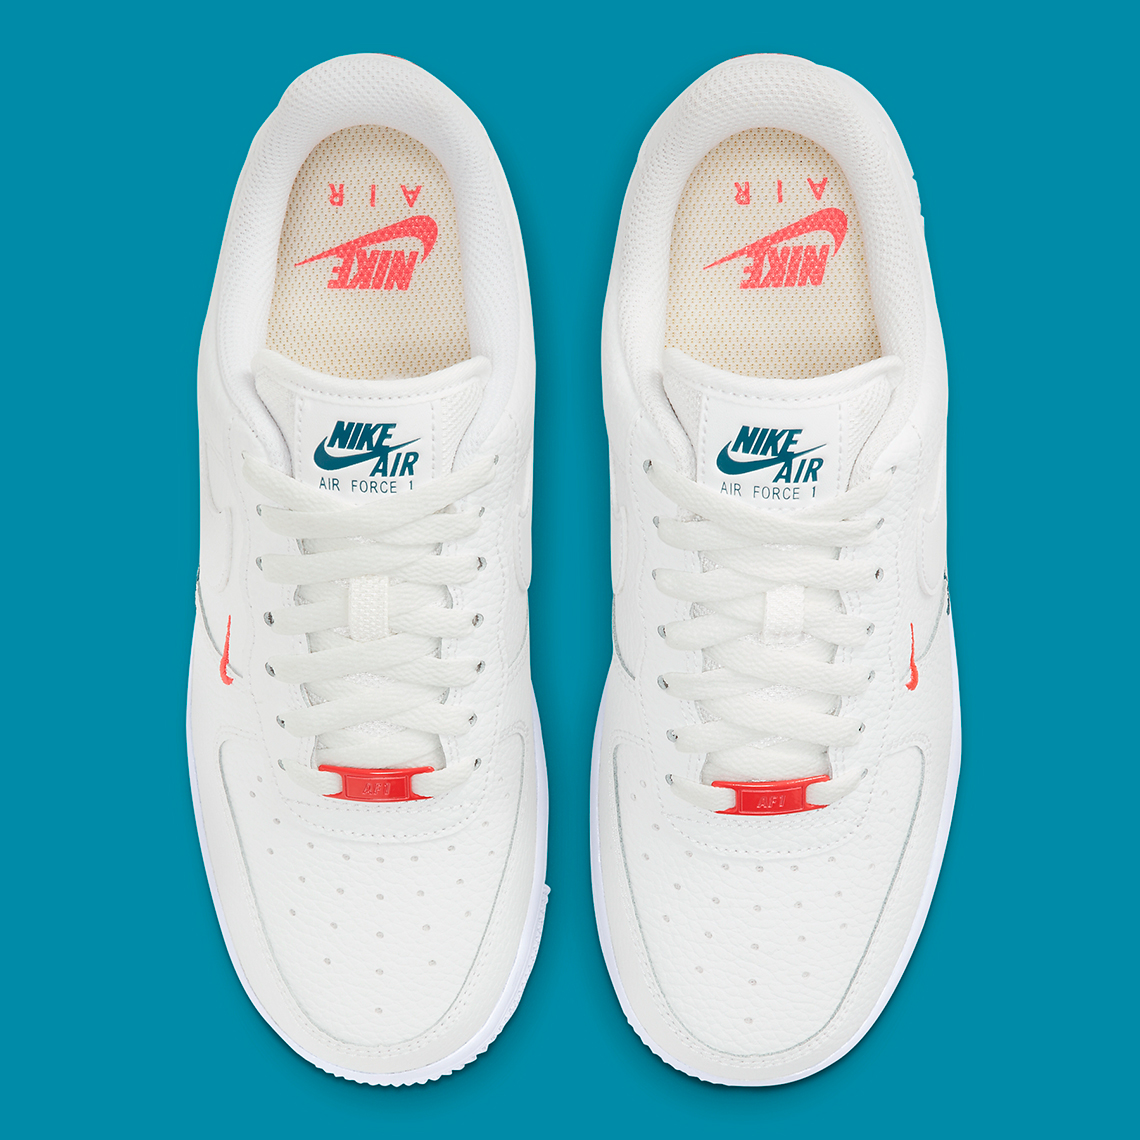 Nike Air Force 1 Low Summit White